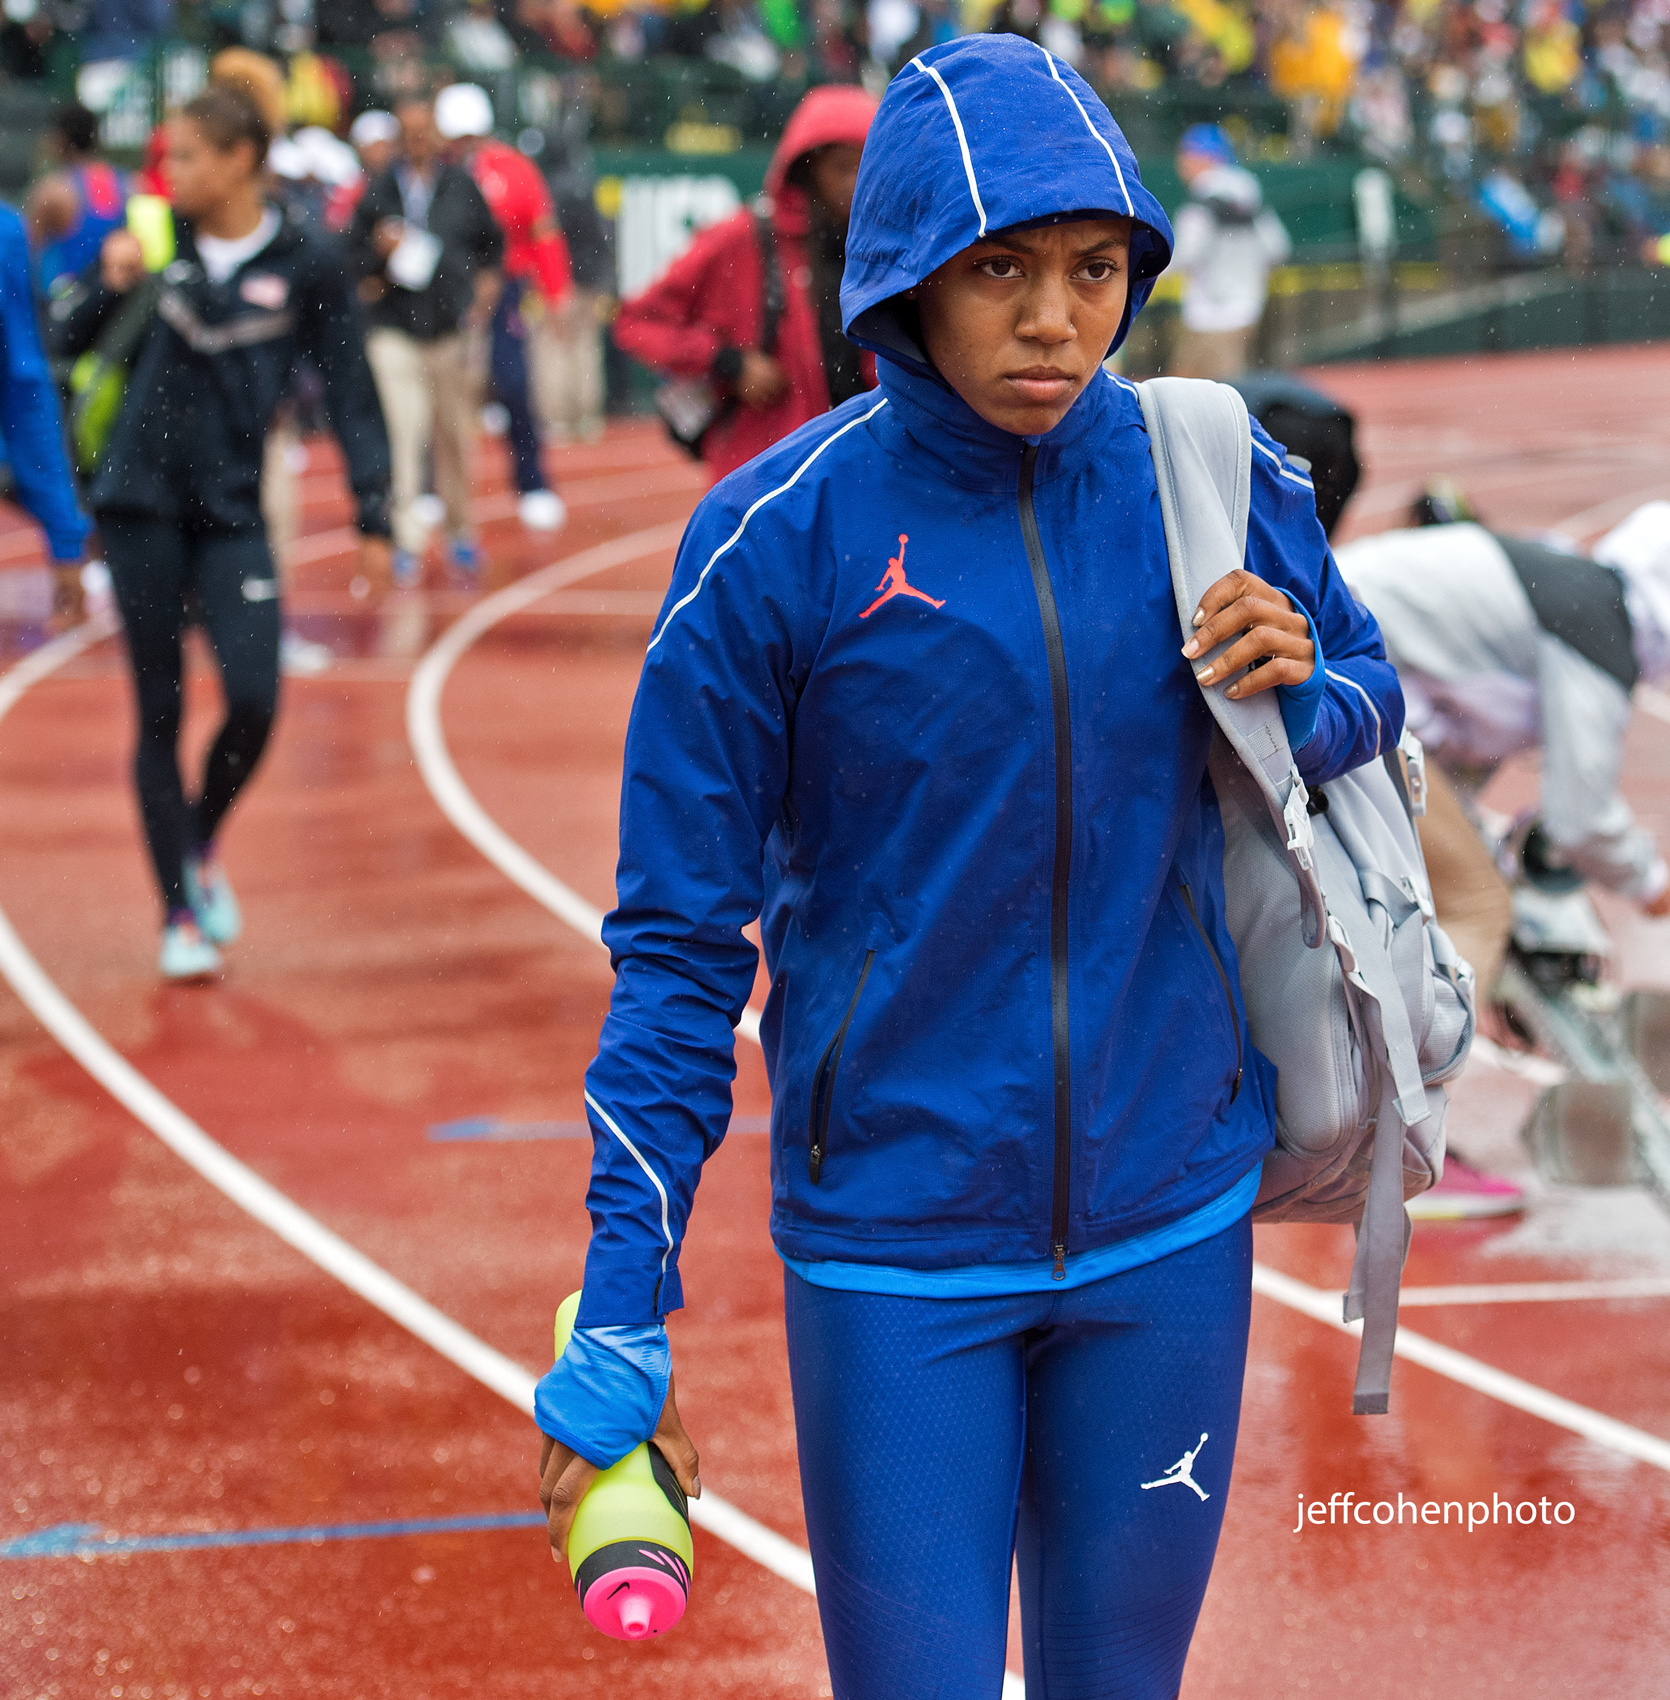 2016-oly-trials-day-7-carter-400mhw-Jeff-cohen-photo-22489-web.jpg